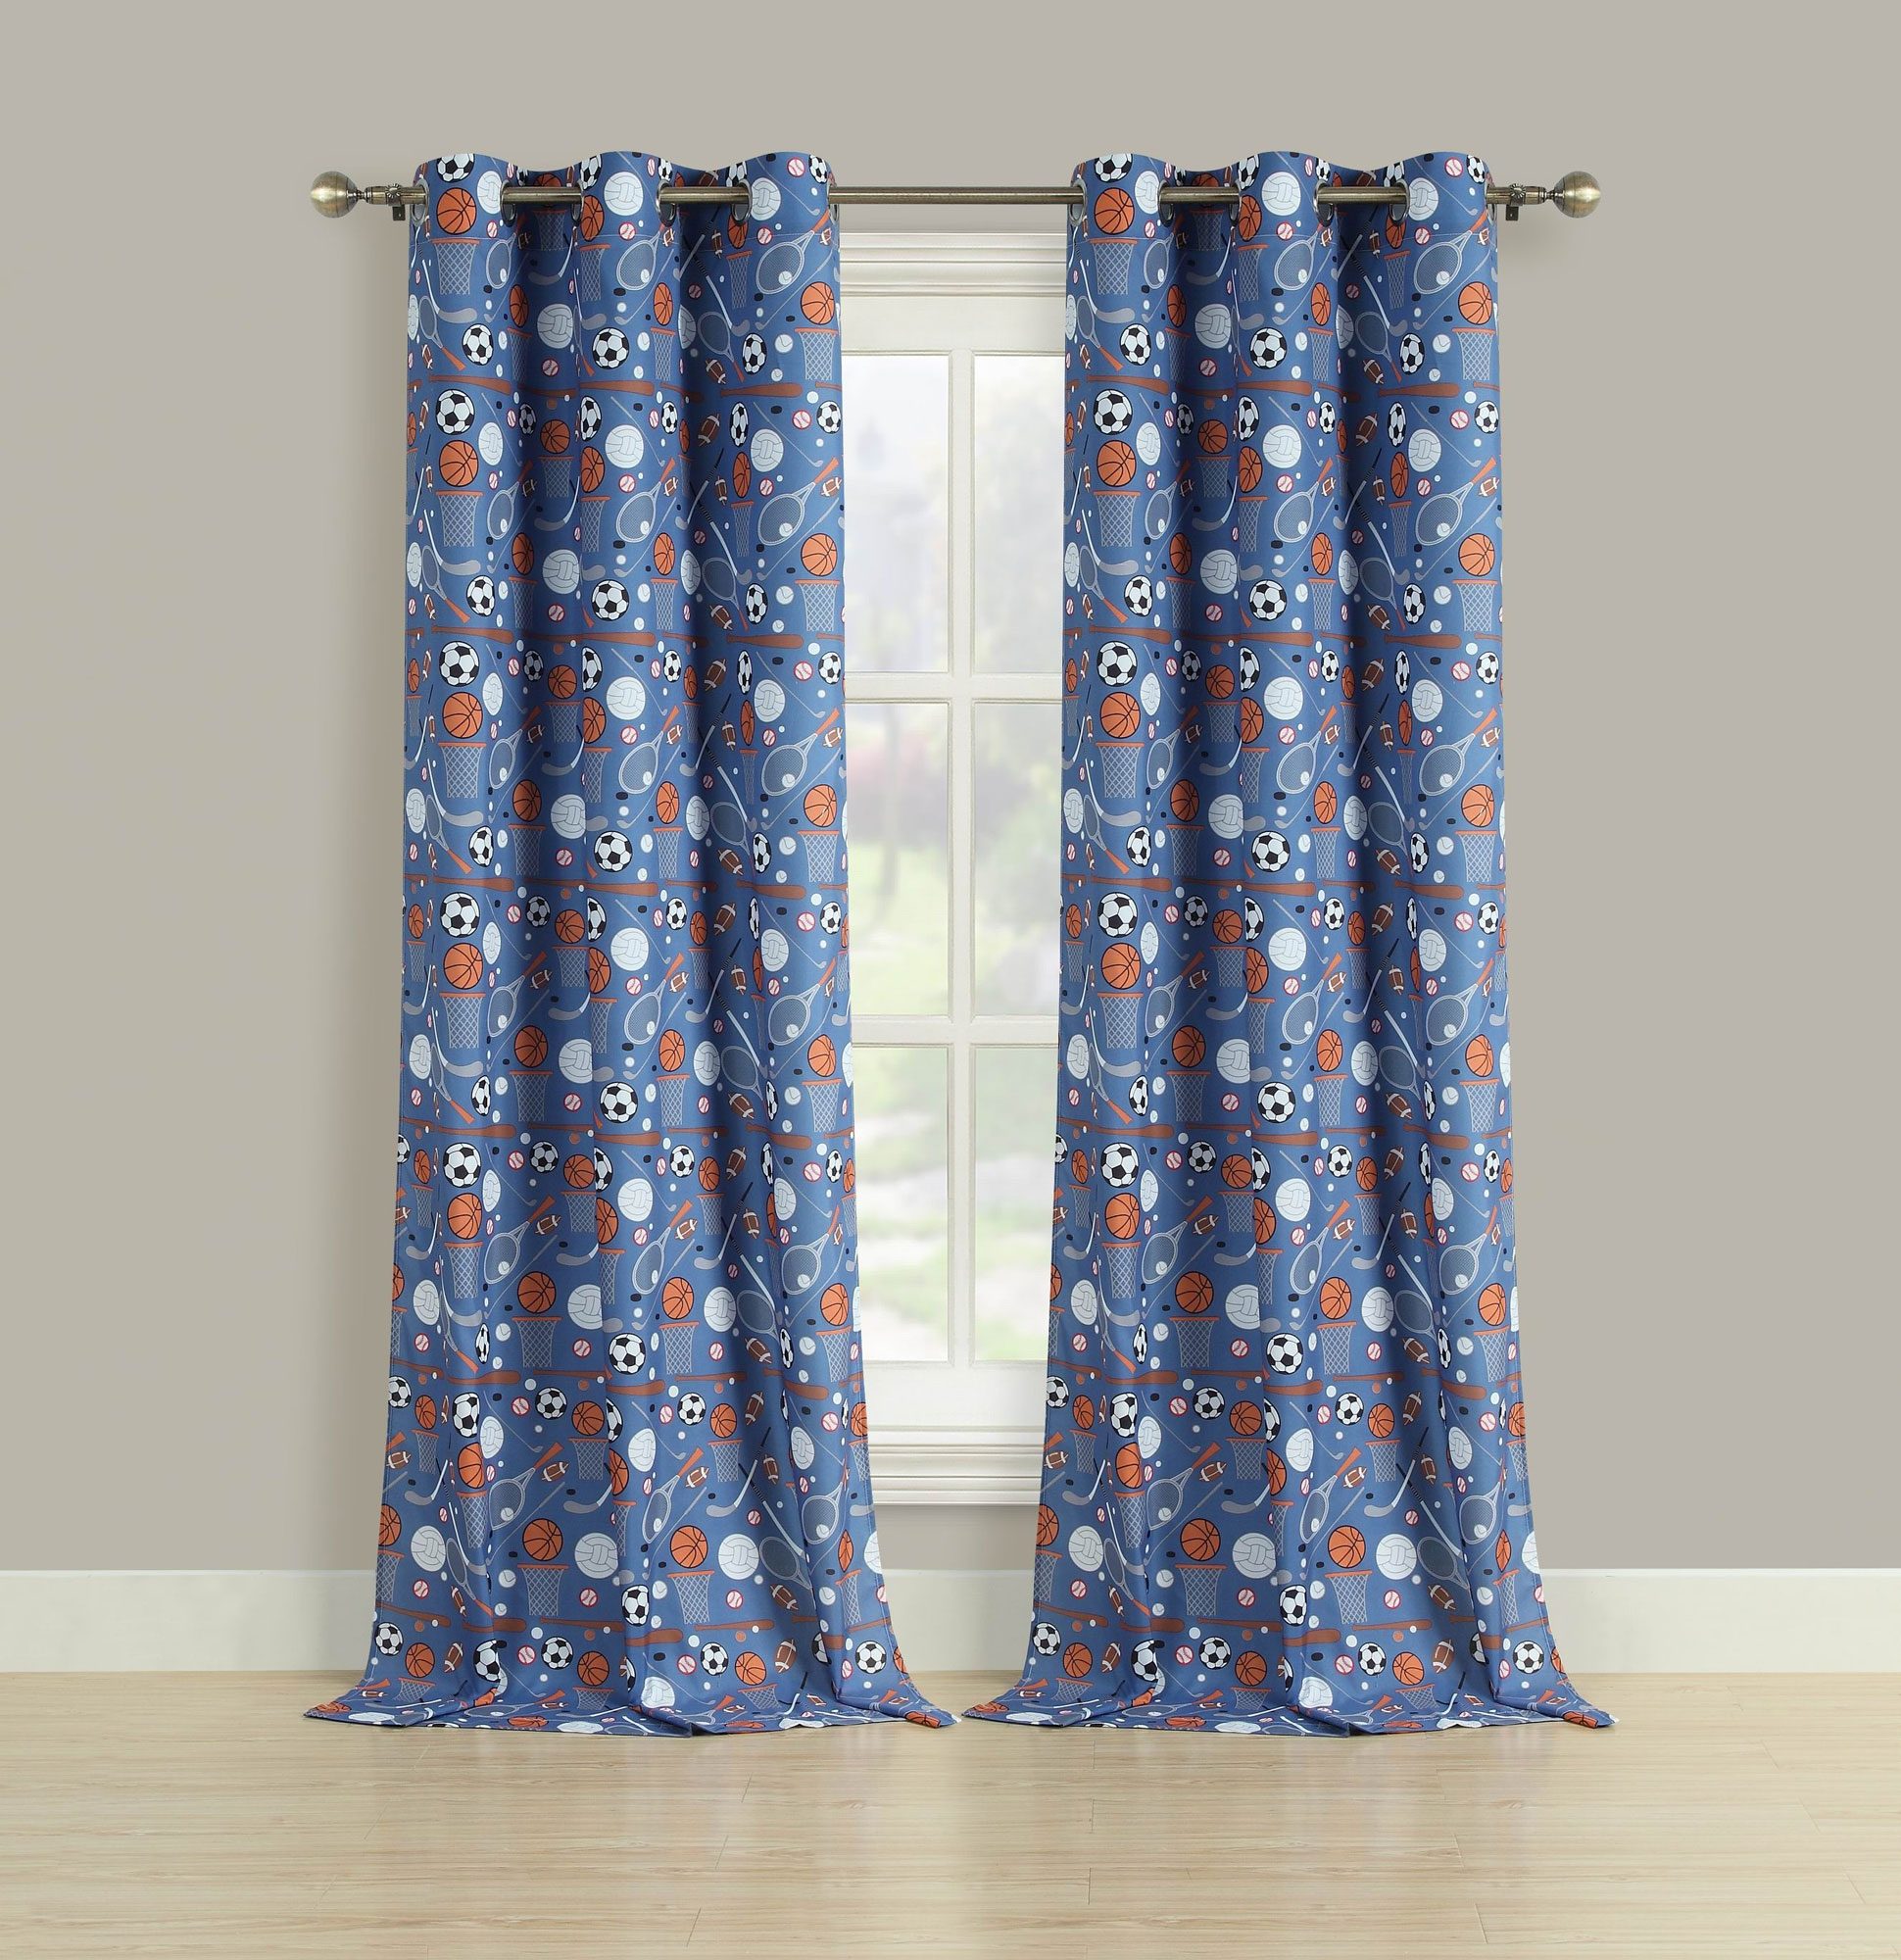 2 Room Darkening Window Curtains Grommet Boys Blue Sports Panel Pair Drapes Thermal 84""